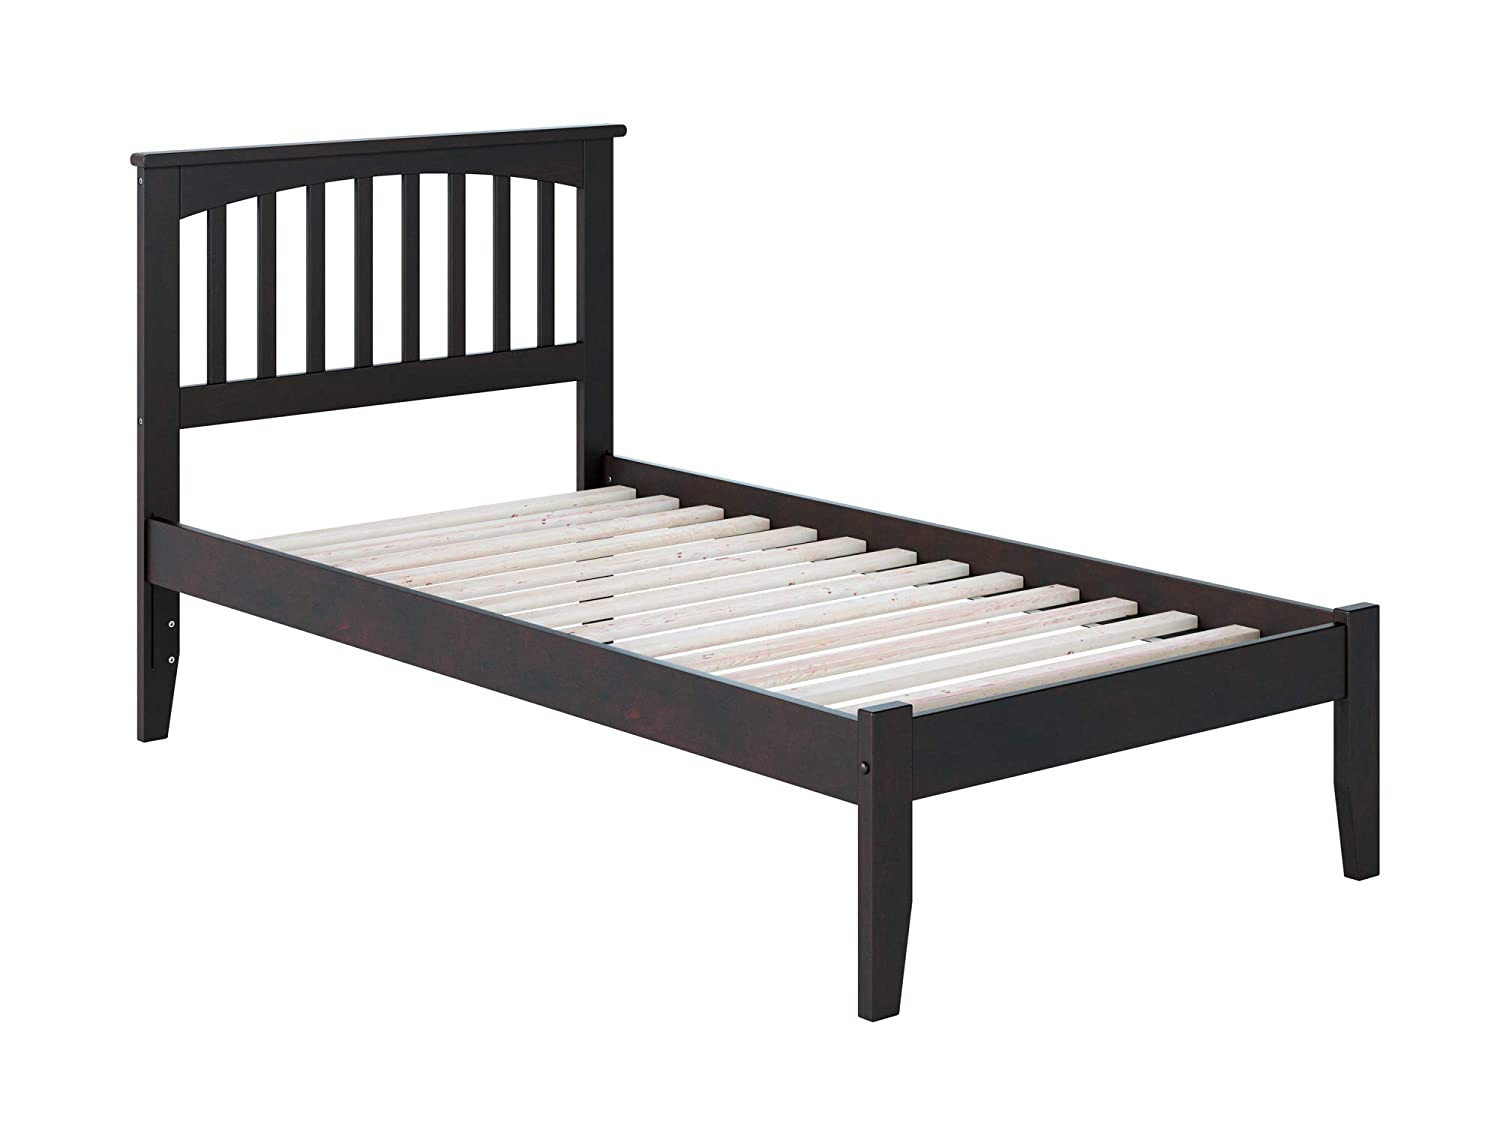 Atlantic Furniture AR8721001 Mission Platform Bed with Open Foot Board, Twin, Espresso